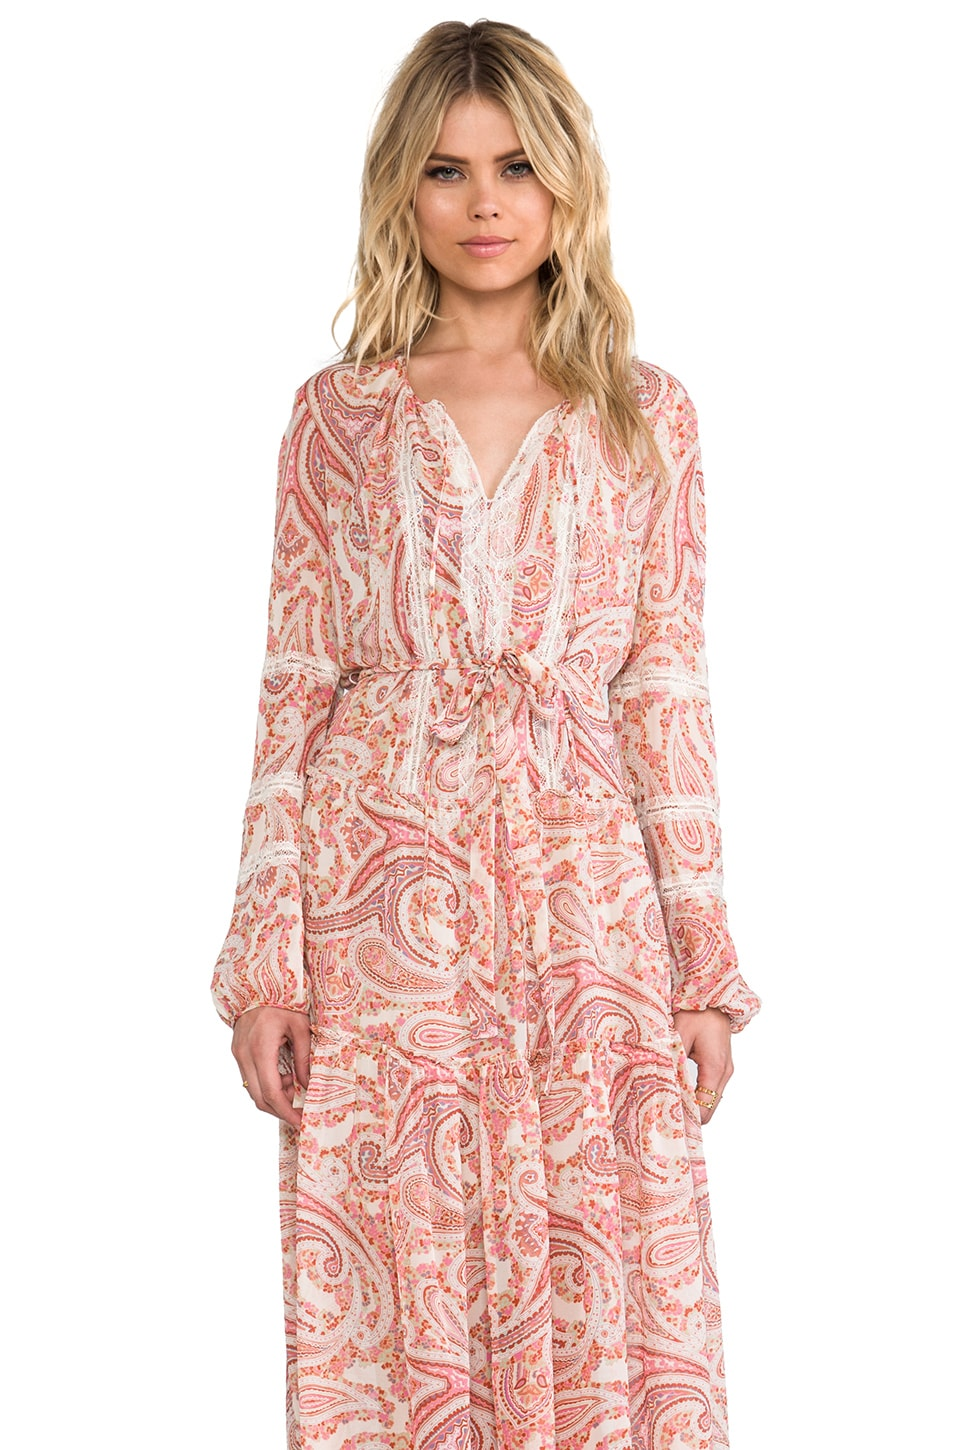 BCBGMAXAZRIA Kati Dress in Pink Multi